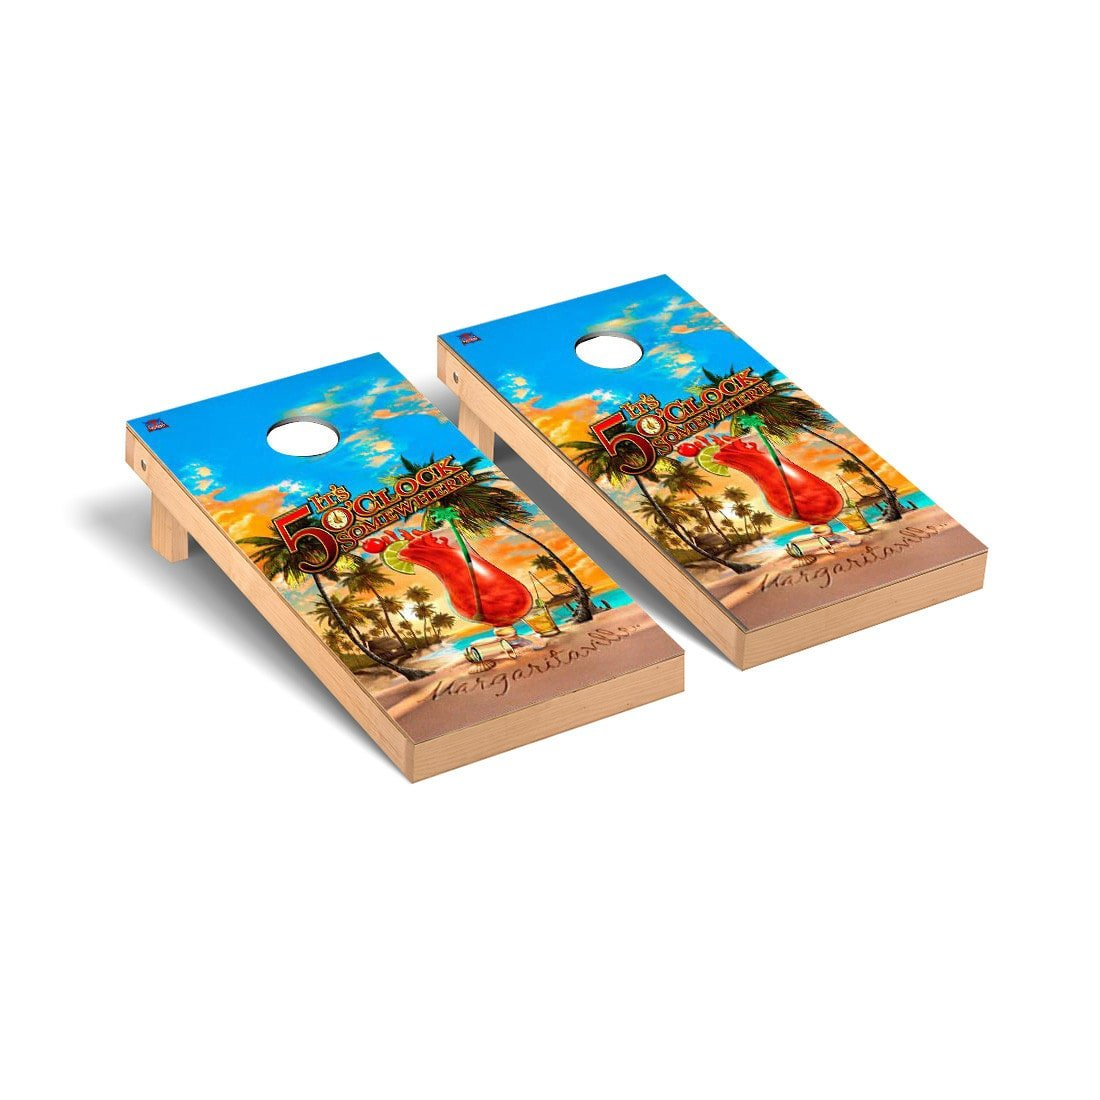 Margaritaville Regulation Cornhole Game Set Its 5 Oclock Somewhere Version by Victory Tailgate